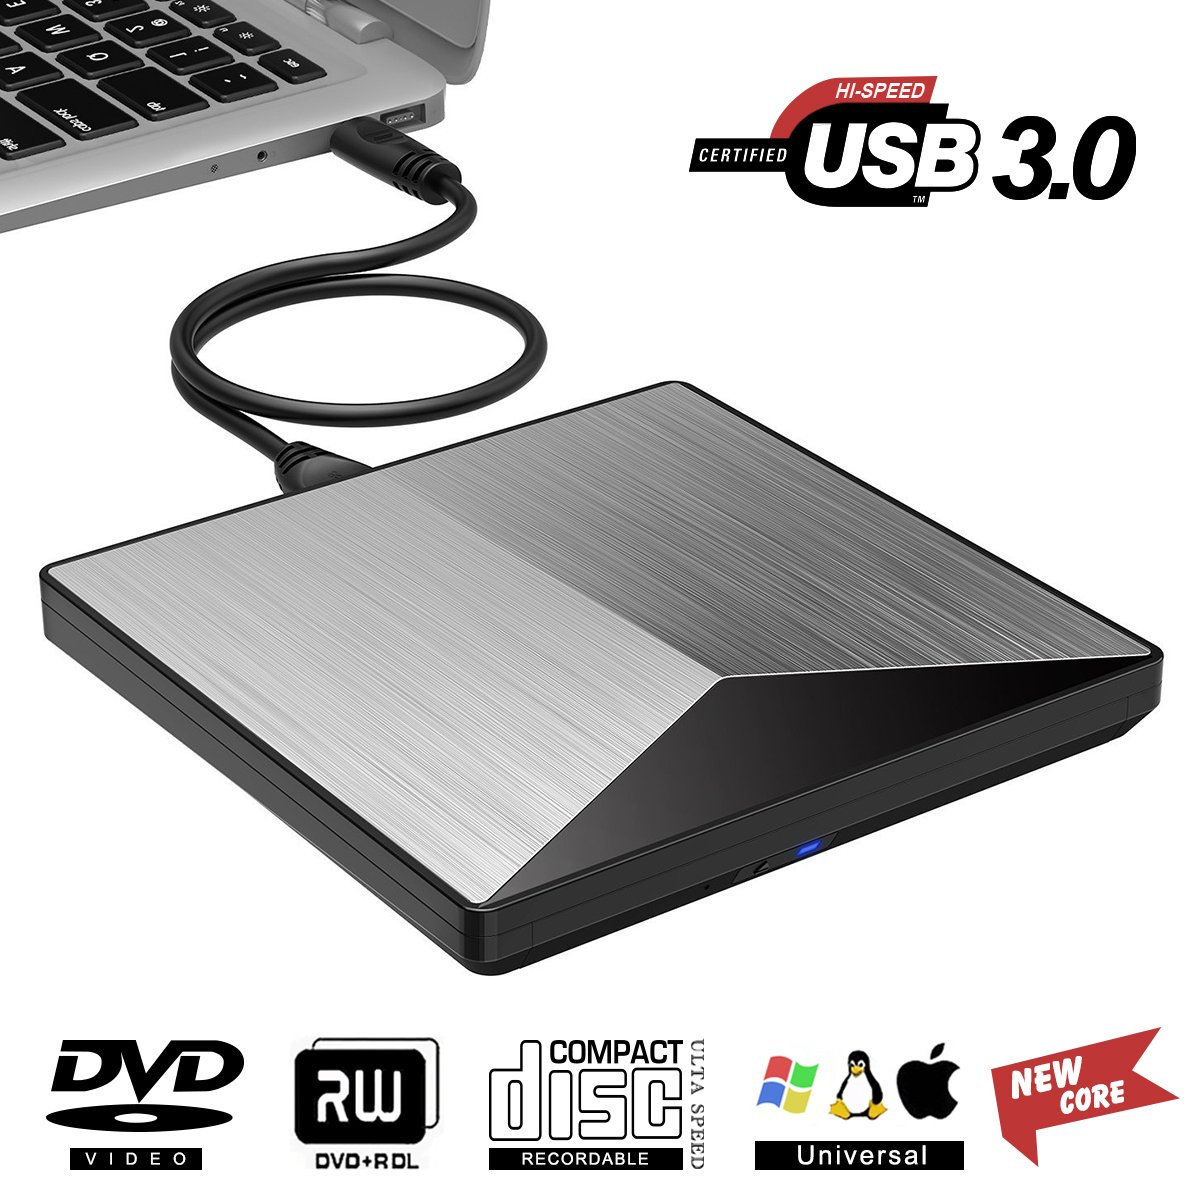 Cocopa ghagsj External DVD Drive Kilineo USB 3.0 CD Burner Reader 100% New Core External Optical Drives Black by Cocopa